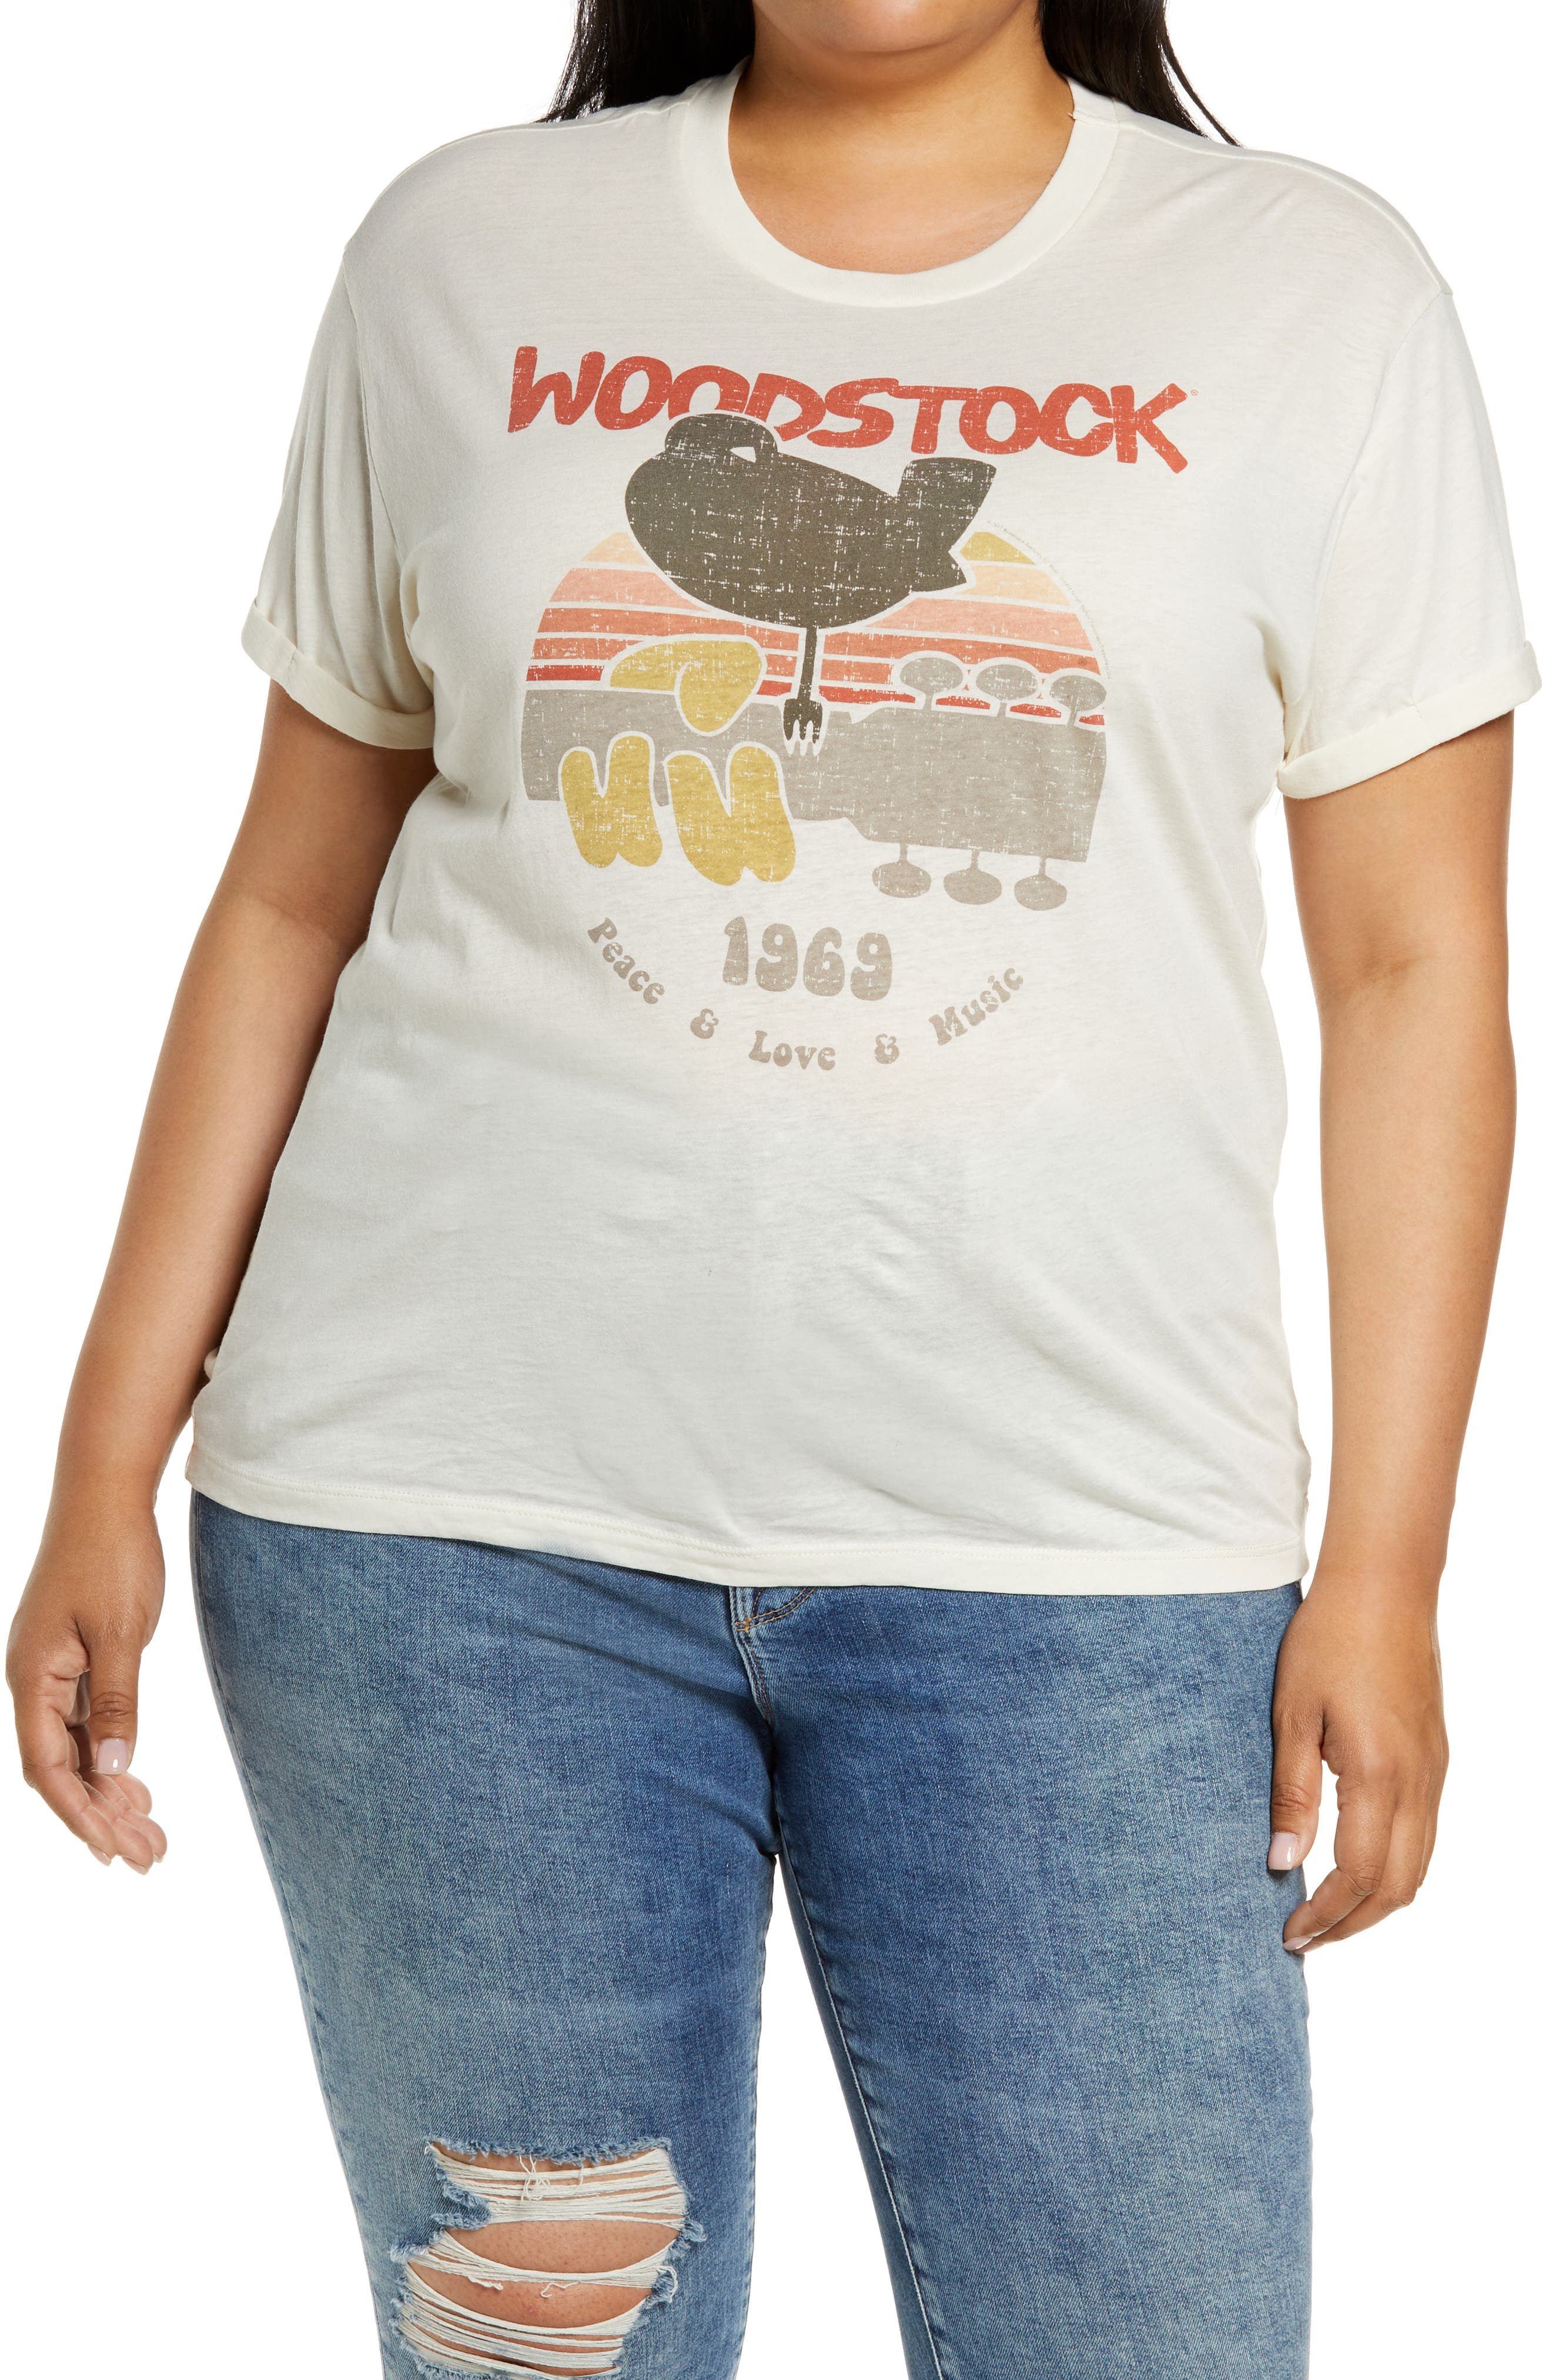 Woodstock Rolled Sleeve Jersey Graphic Tee